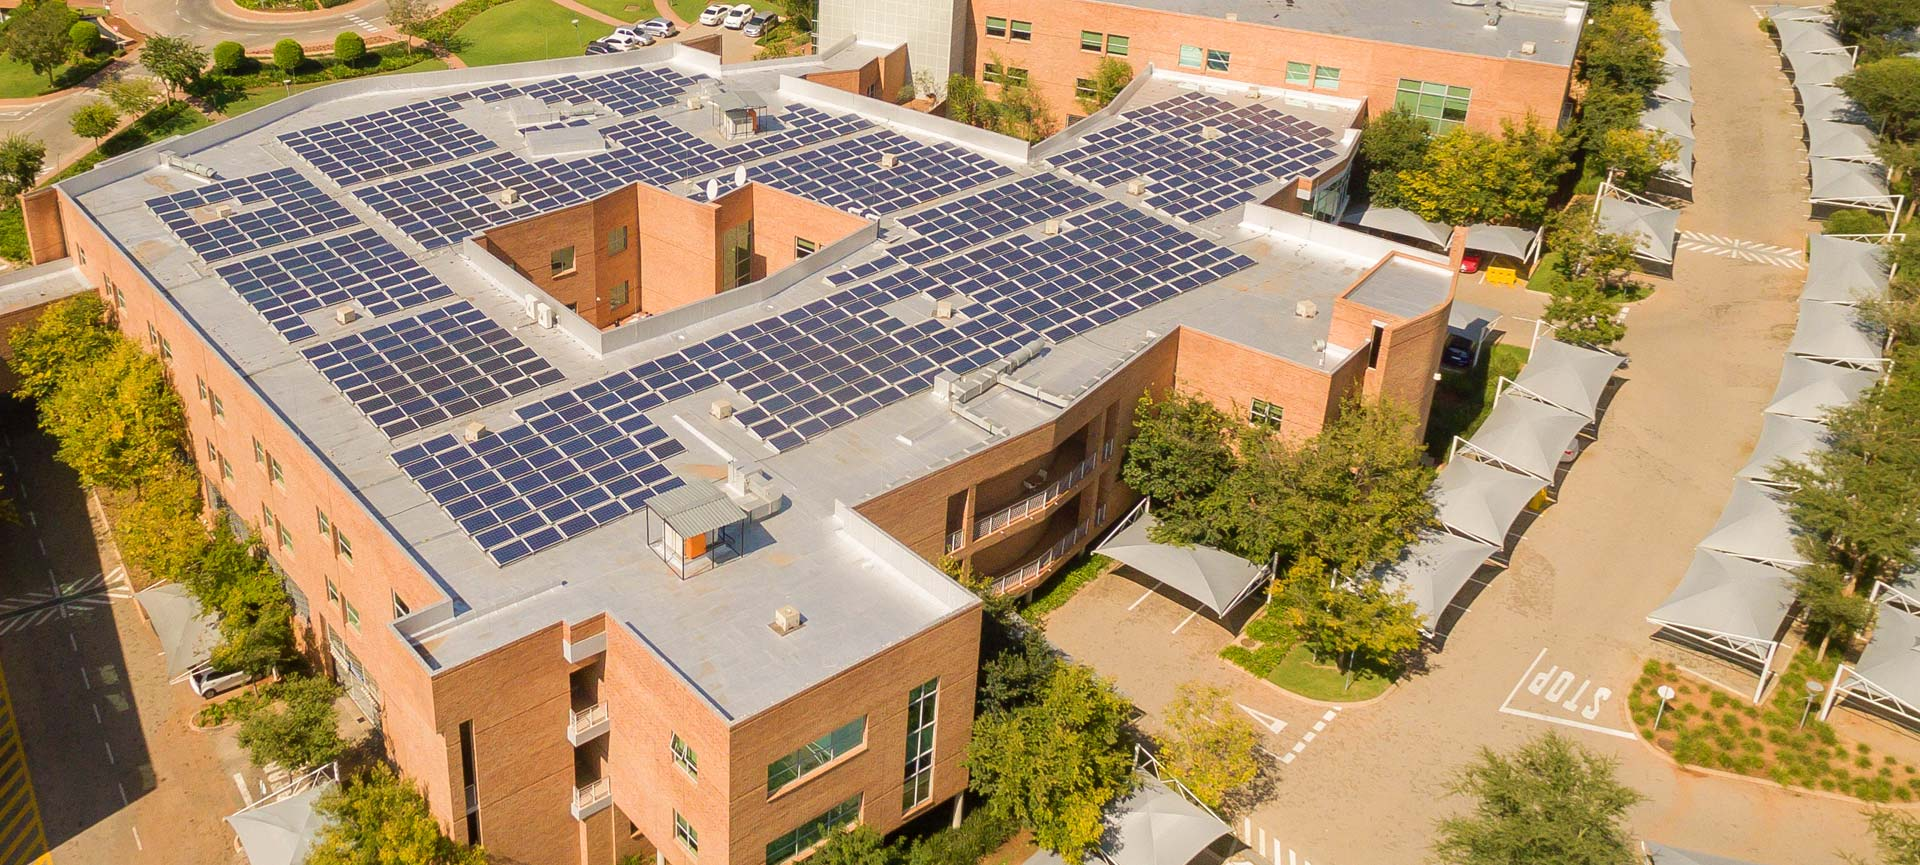 Find out what solar solutions Sunworx can offer your business